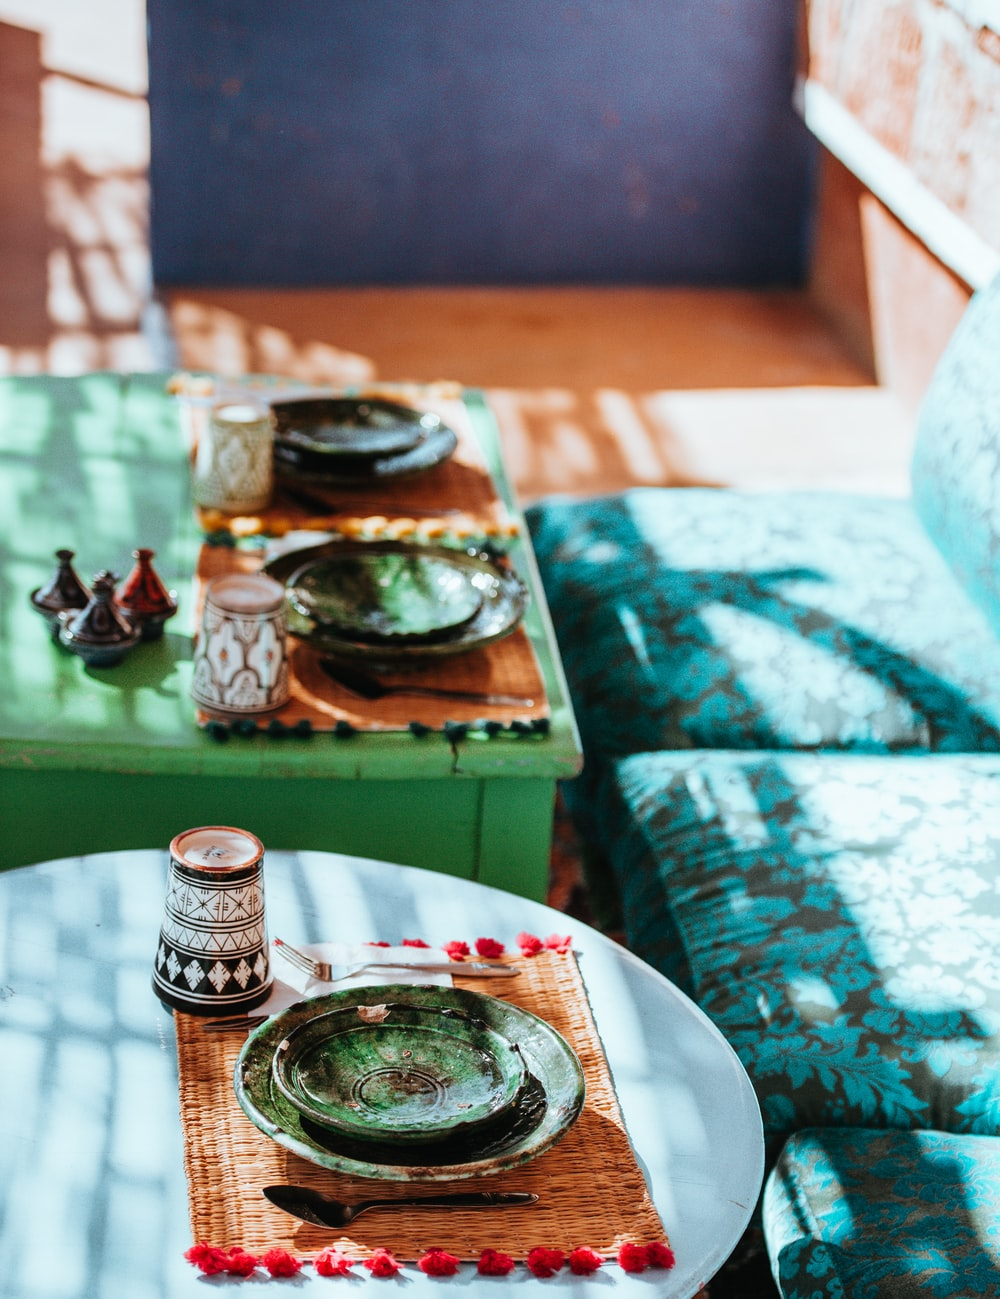 green ceramic bowl and plate on table